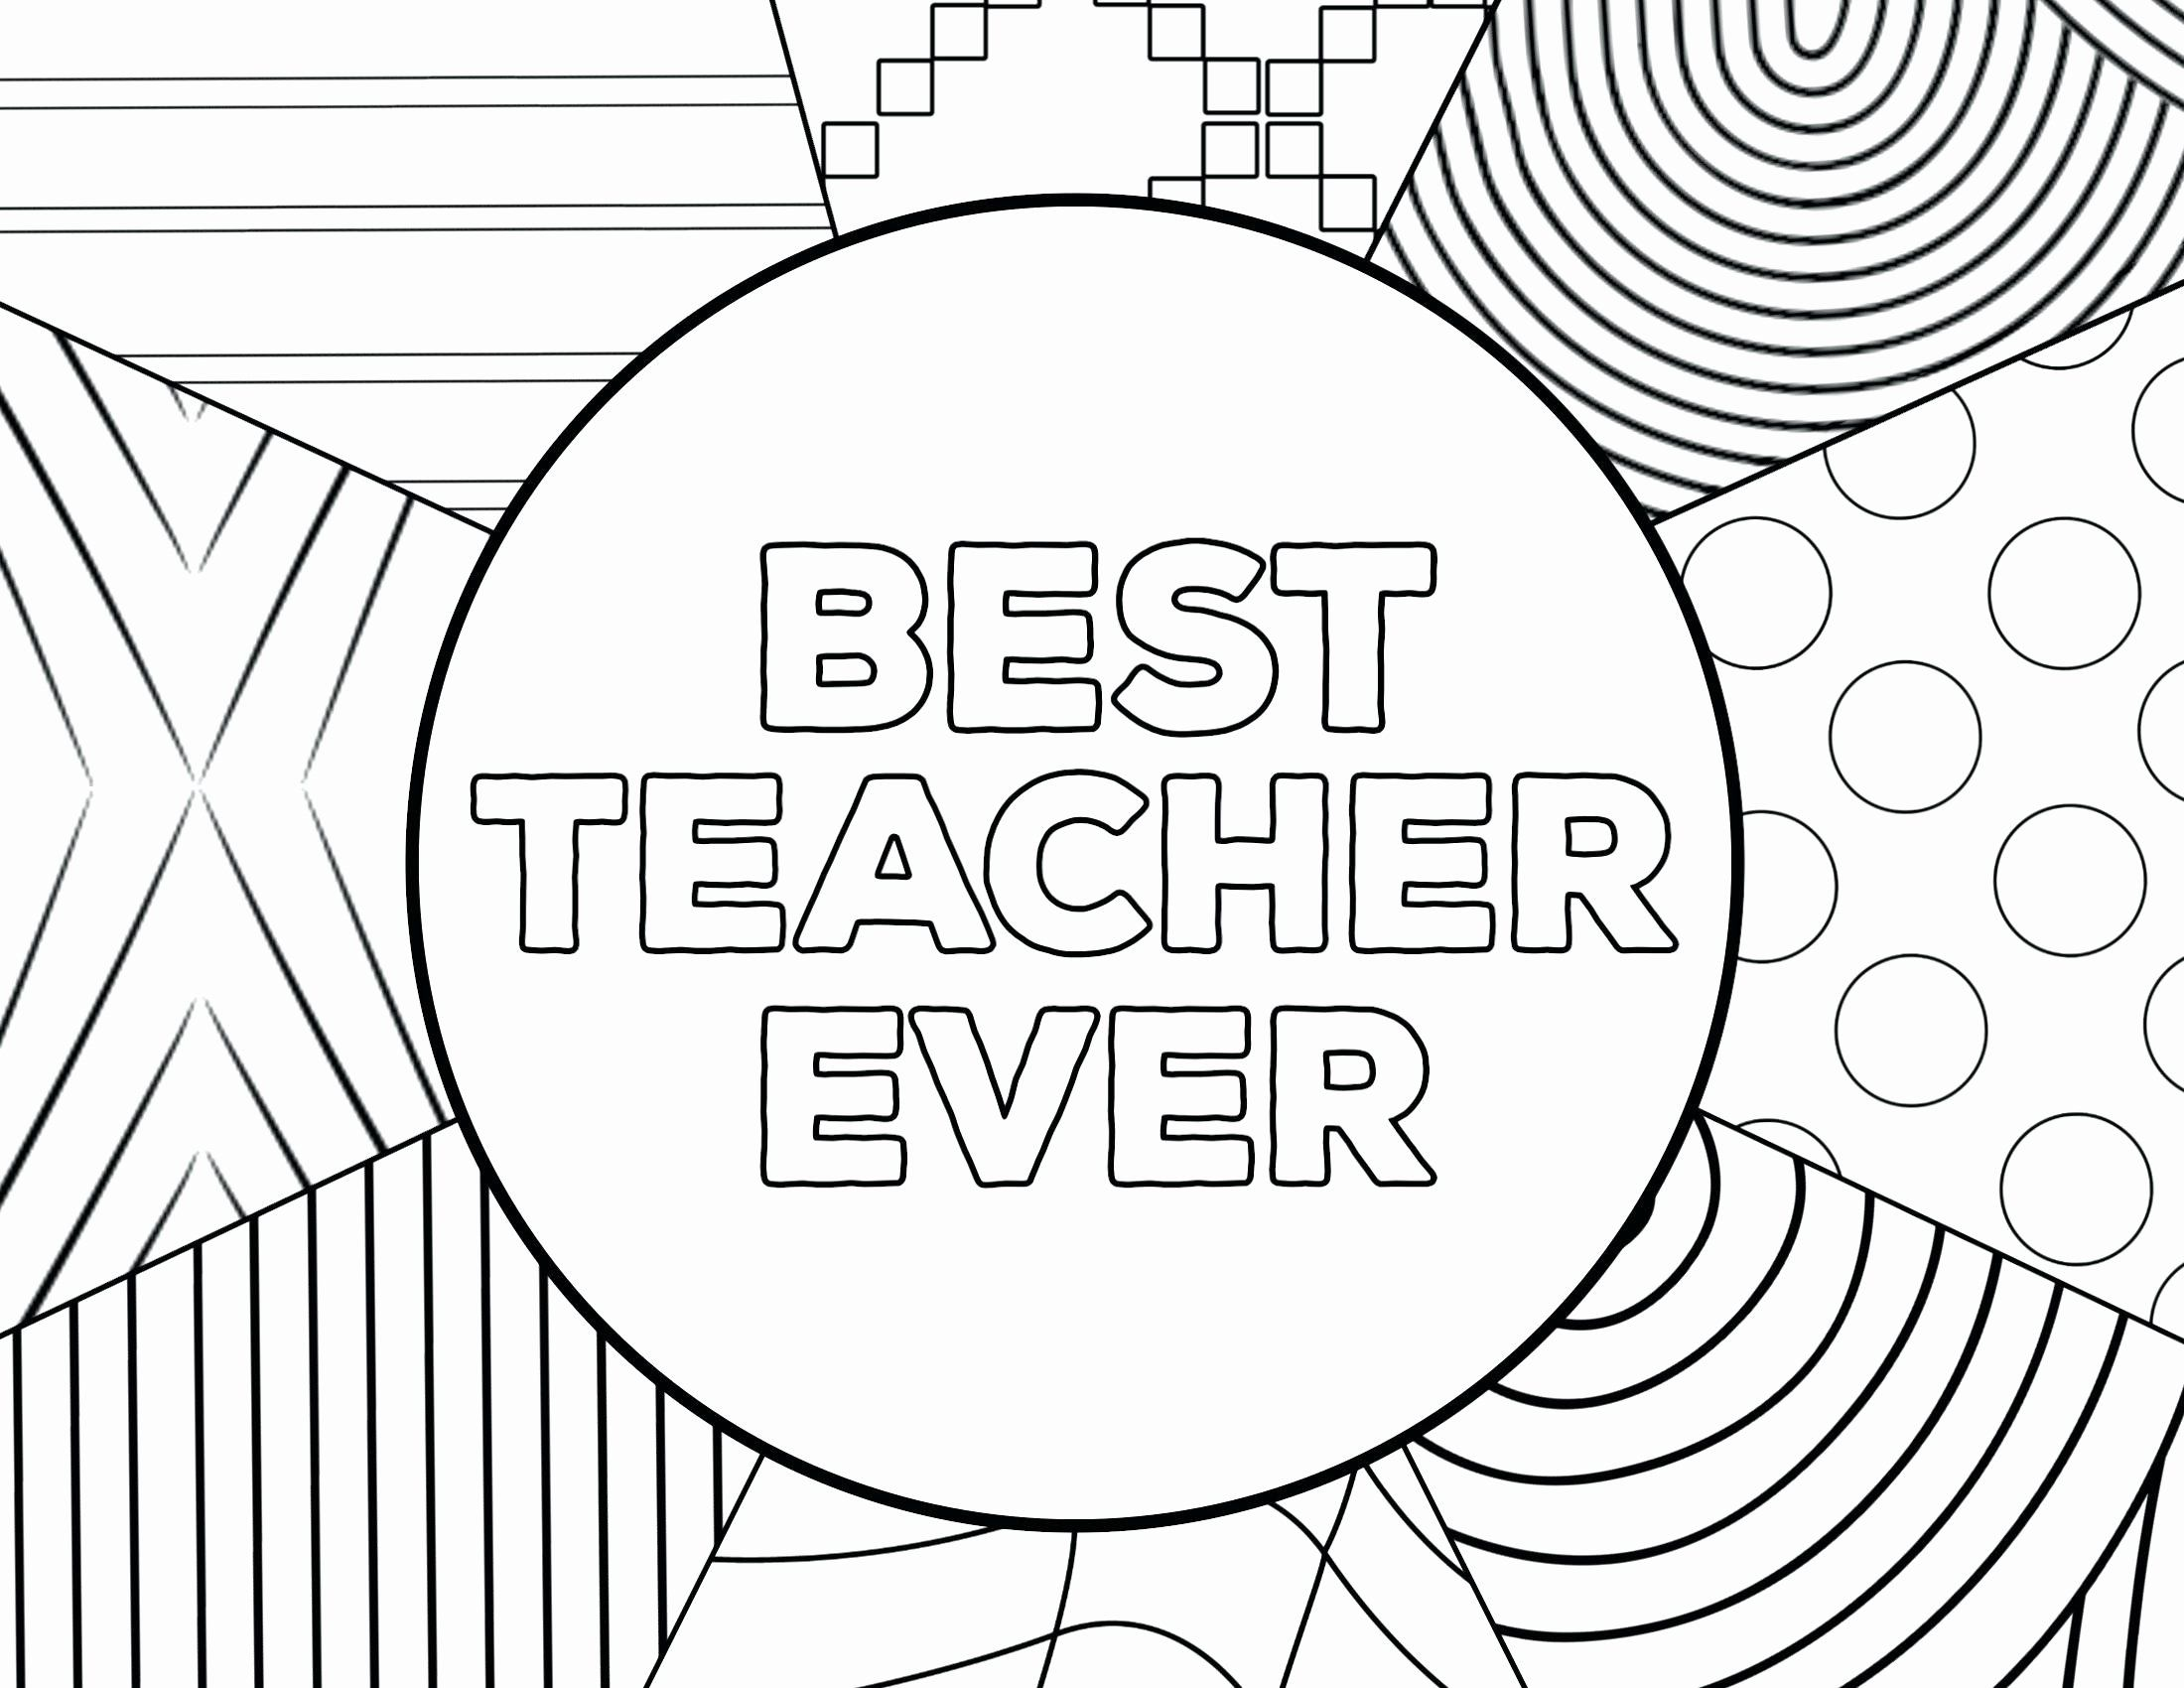 Teacher Appreciation Day Card New Thank You Teacher Coloring Cards Eastbayp Teacher Appreciation Teacher Thank You Cards Teacher Appreciation Week Printables